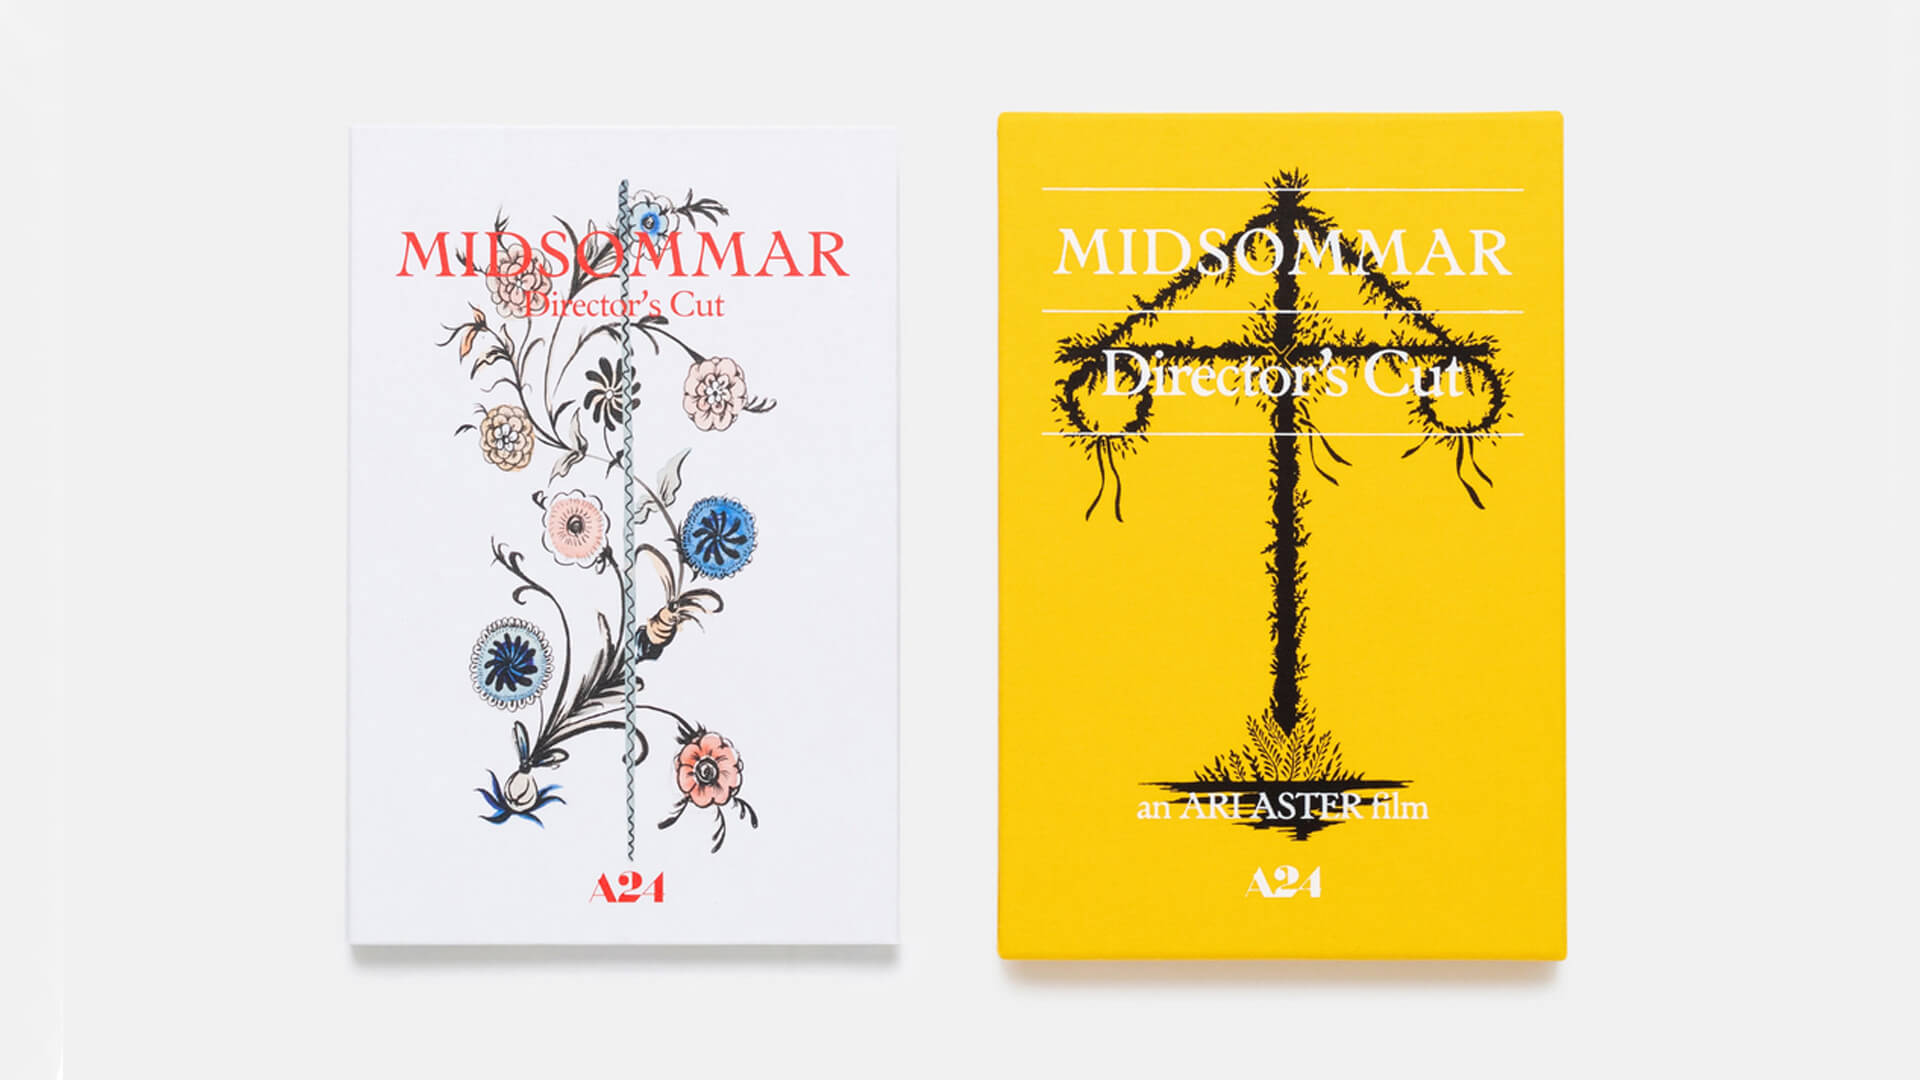 Midsommar Director's Cut: Collector's Edition